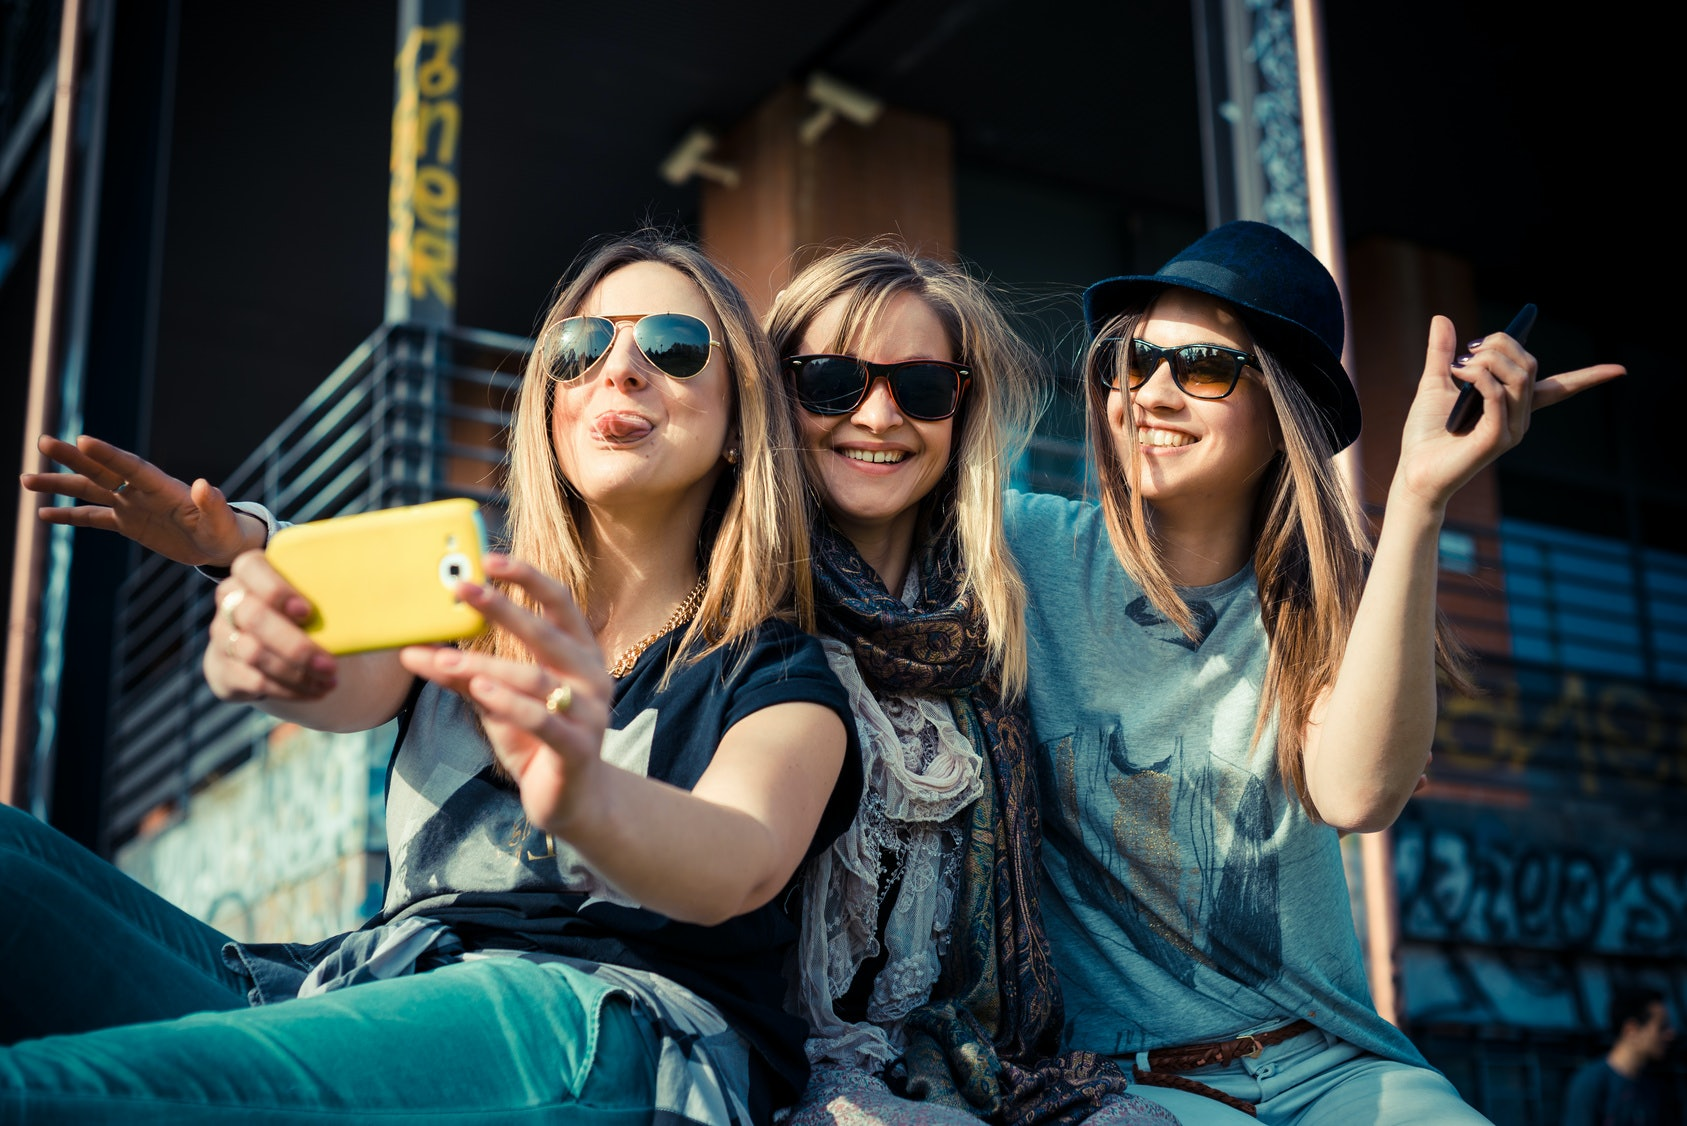 How to meet friends in your 30s